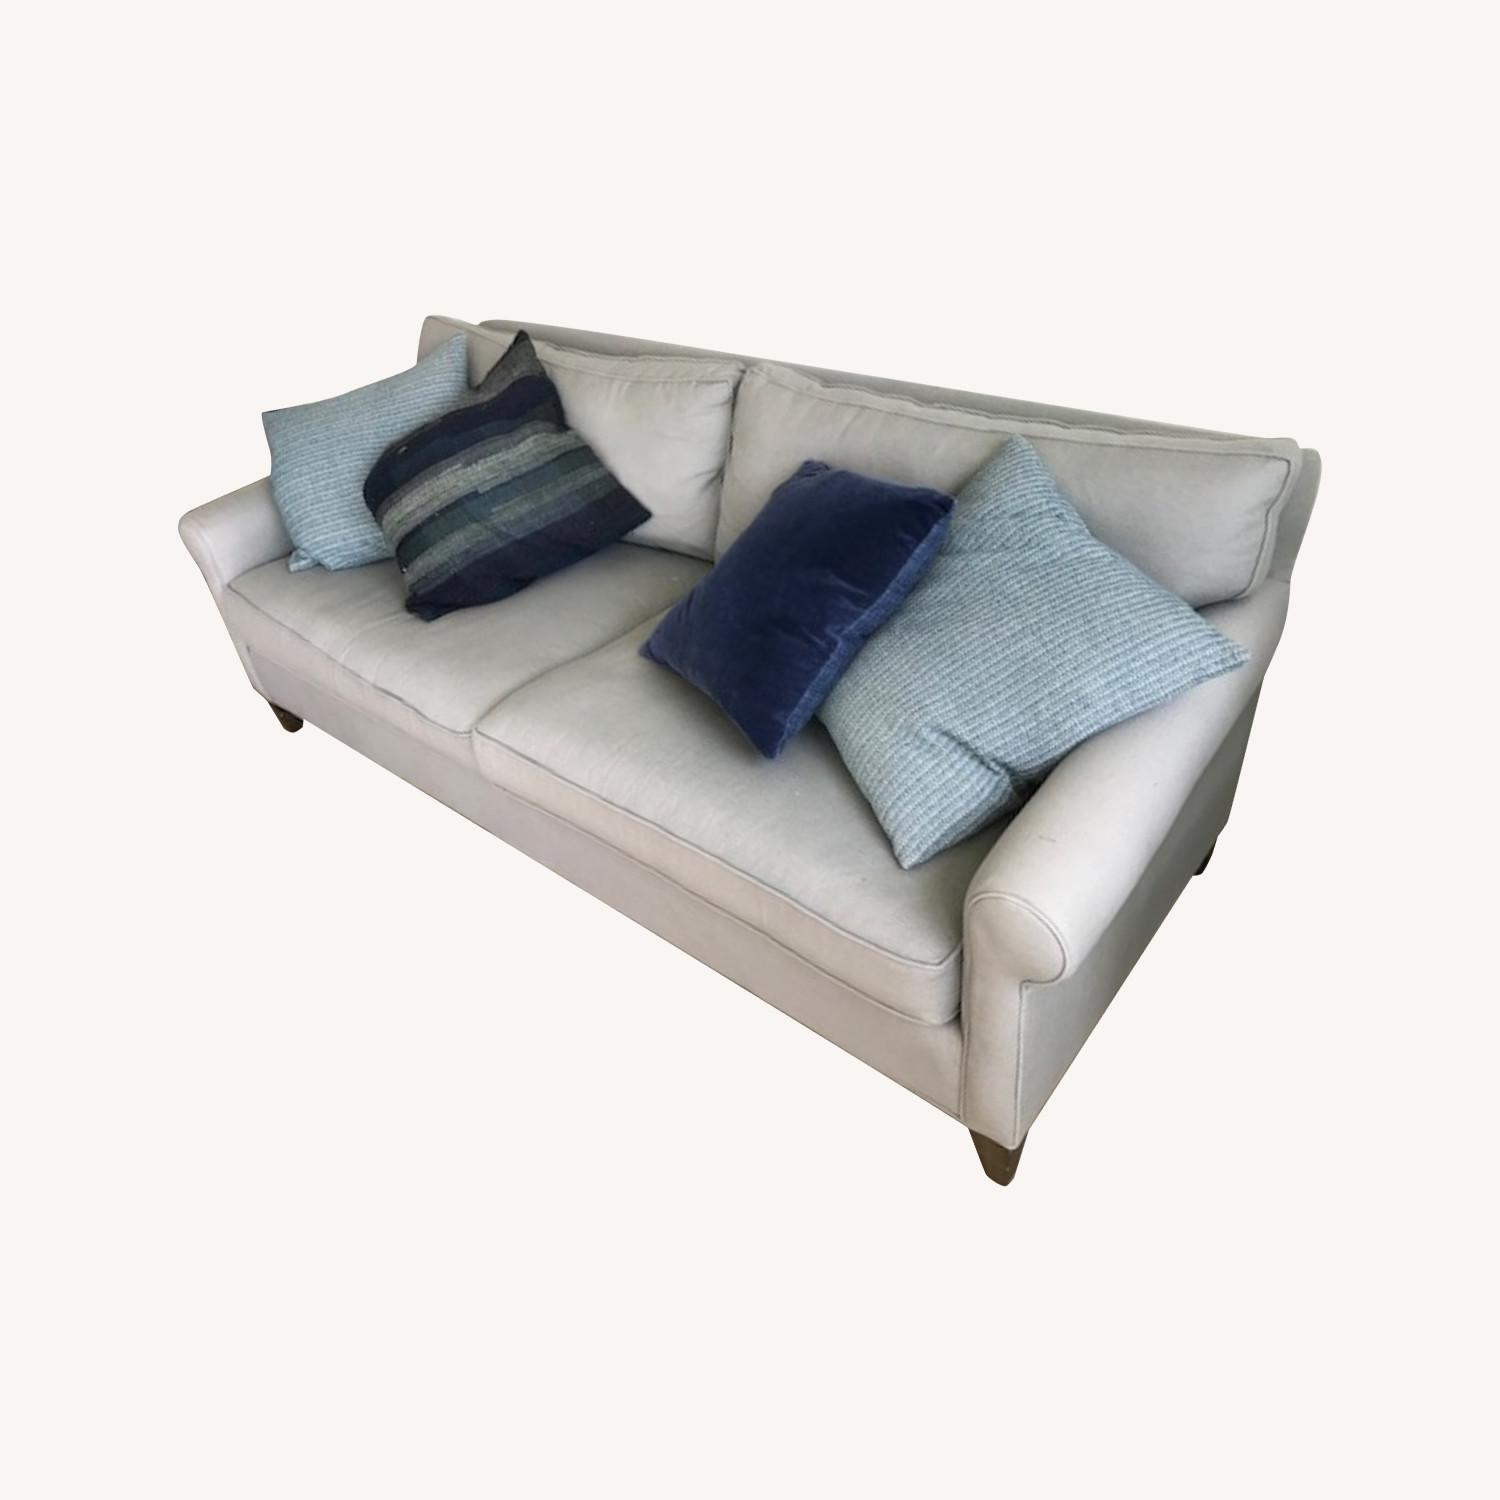 Crate & Barrel Montclair Sofa - image-0